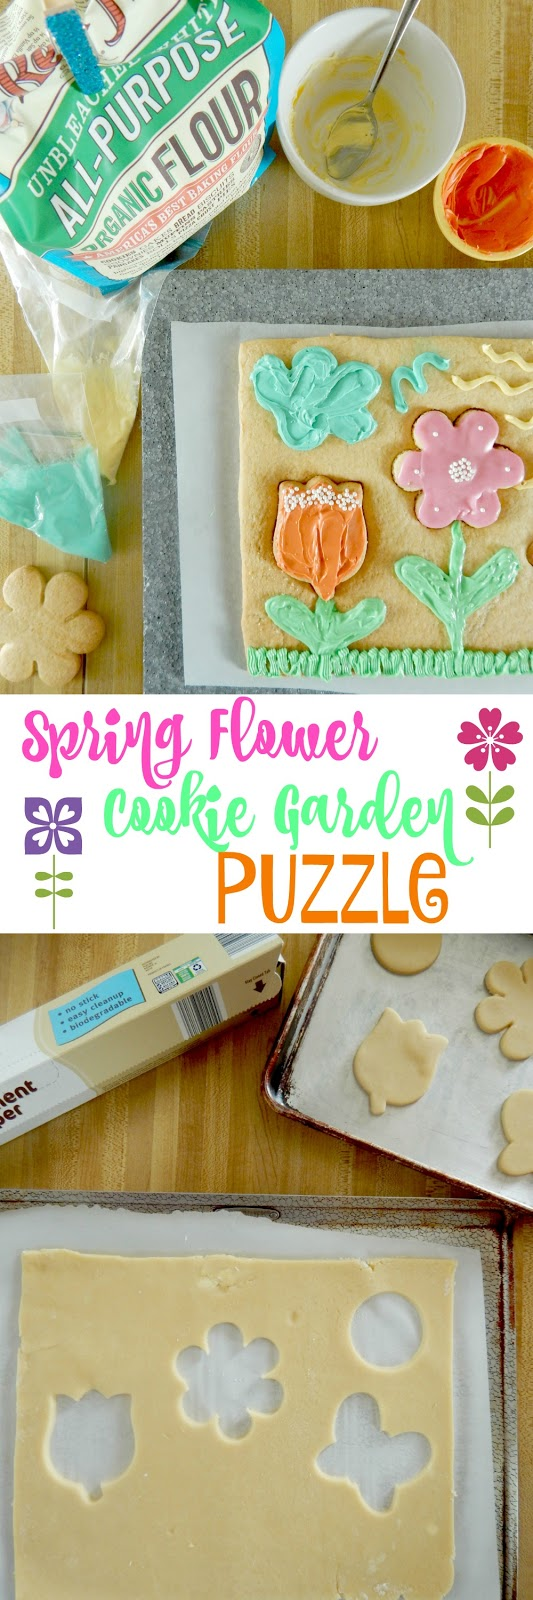 Spring Flower Cookie Garden Puzzle...have an itch for Spring?  This fun-filled baking project is great for moms and kids!  Who knew you could make a puzzle with cookie dough? (sweetandsavoryfood.com)